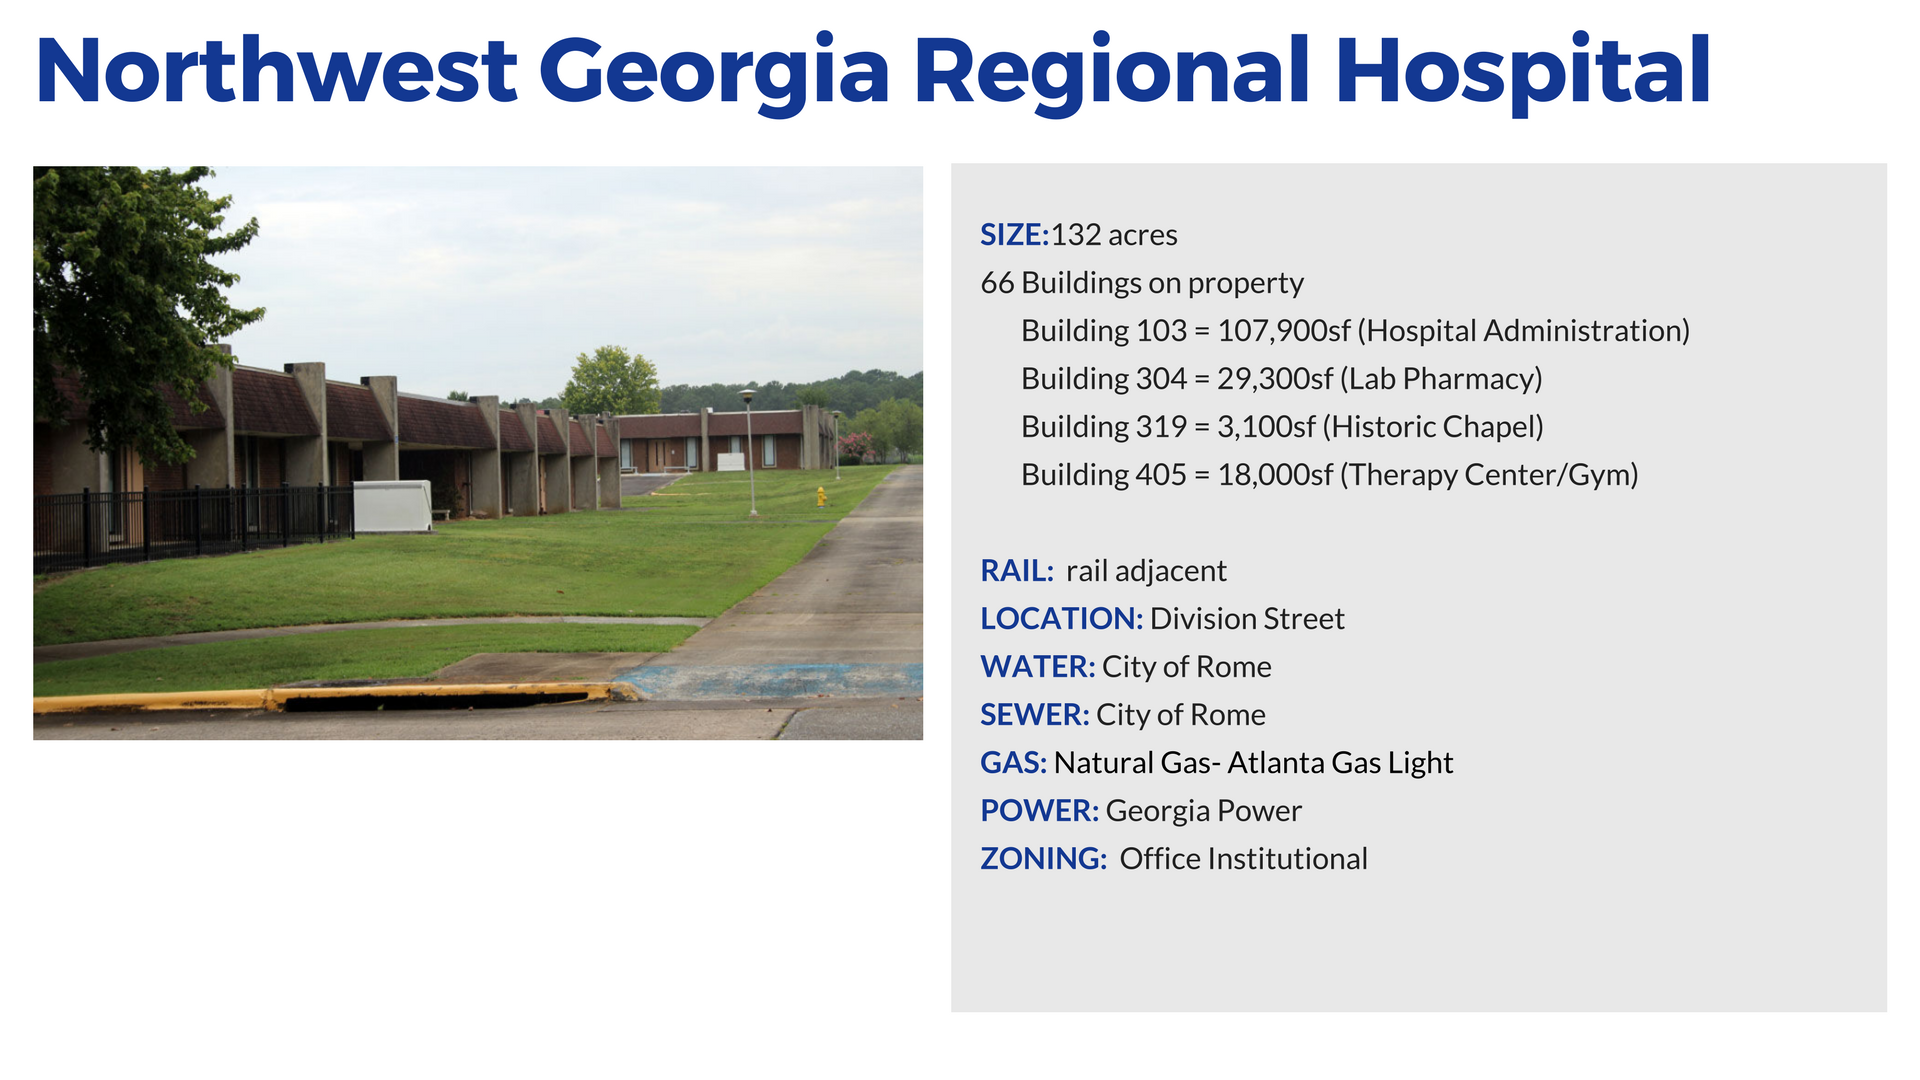 Northwest Regional Hospital in Rome and Floyd County Georgia